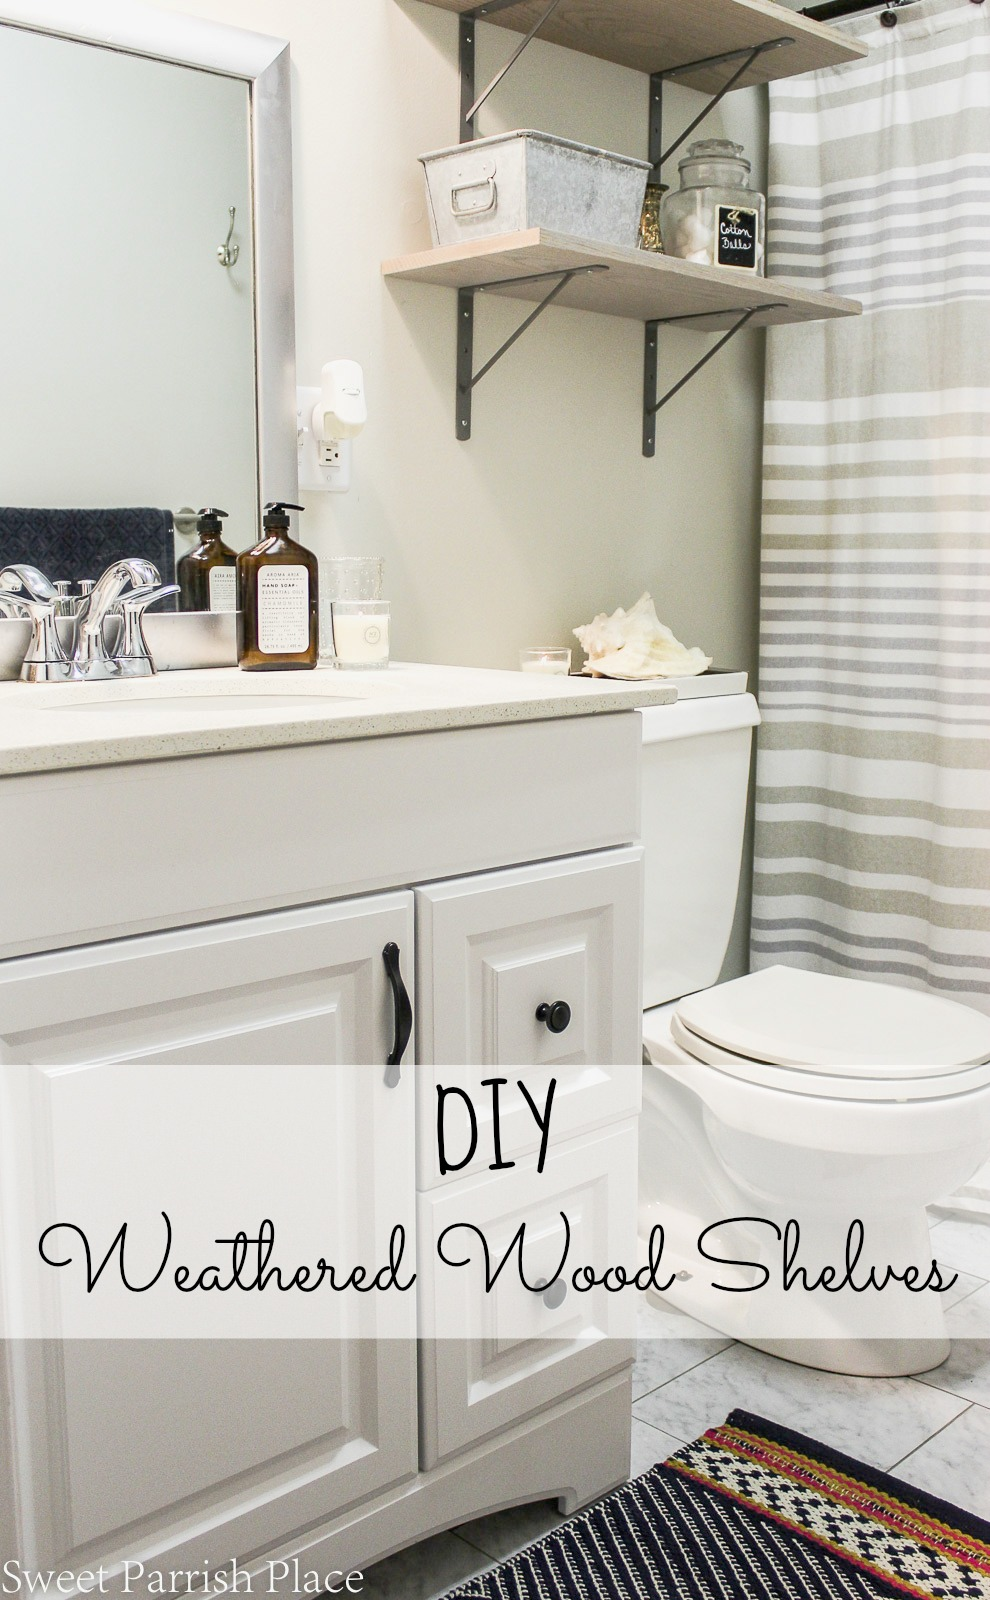 DIY weathered wood shelves